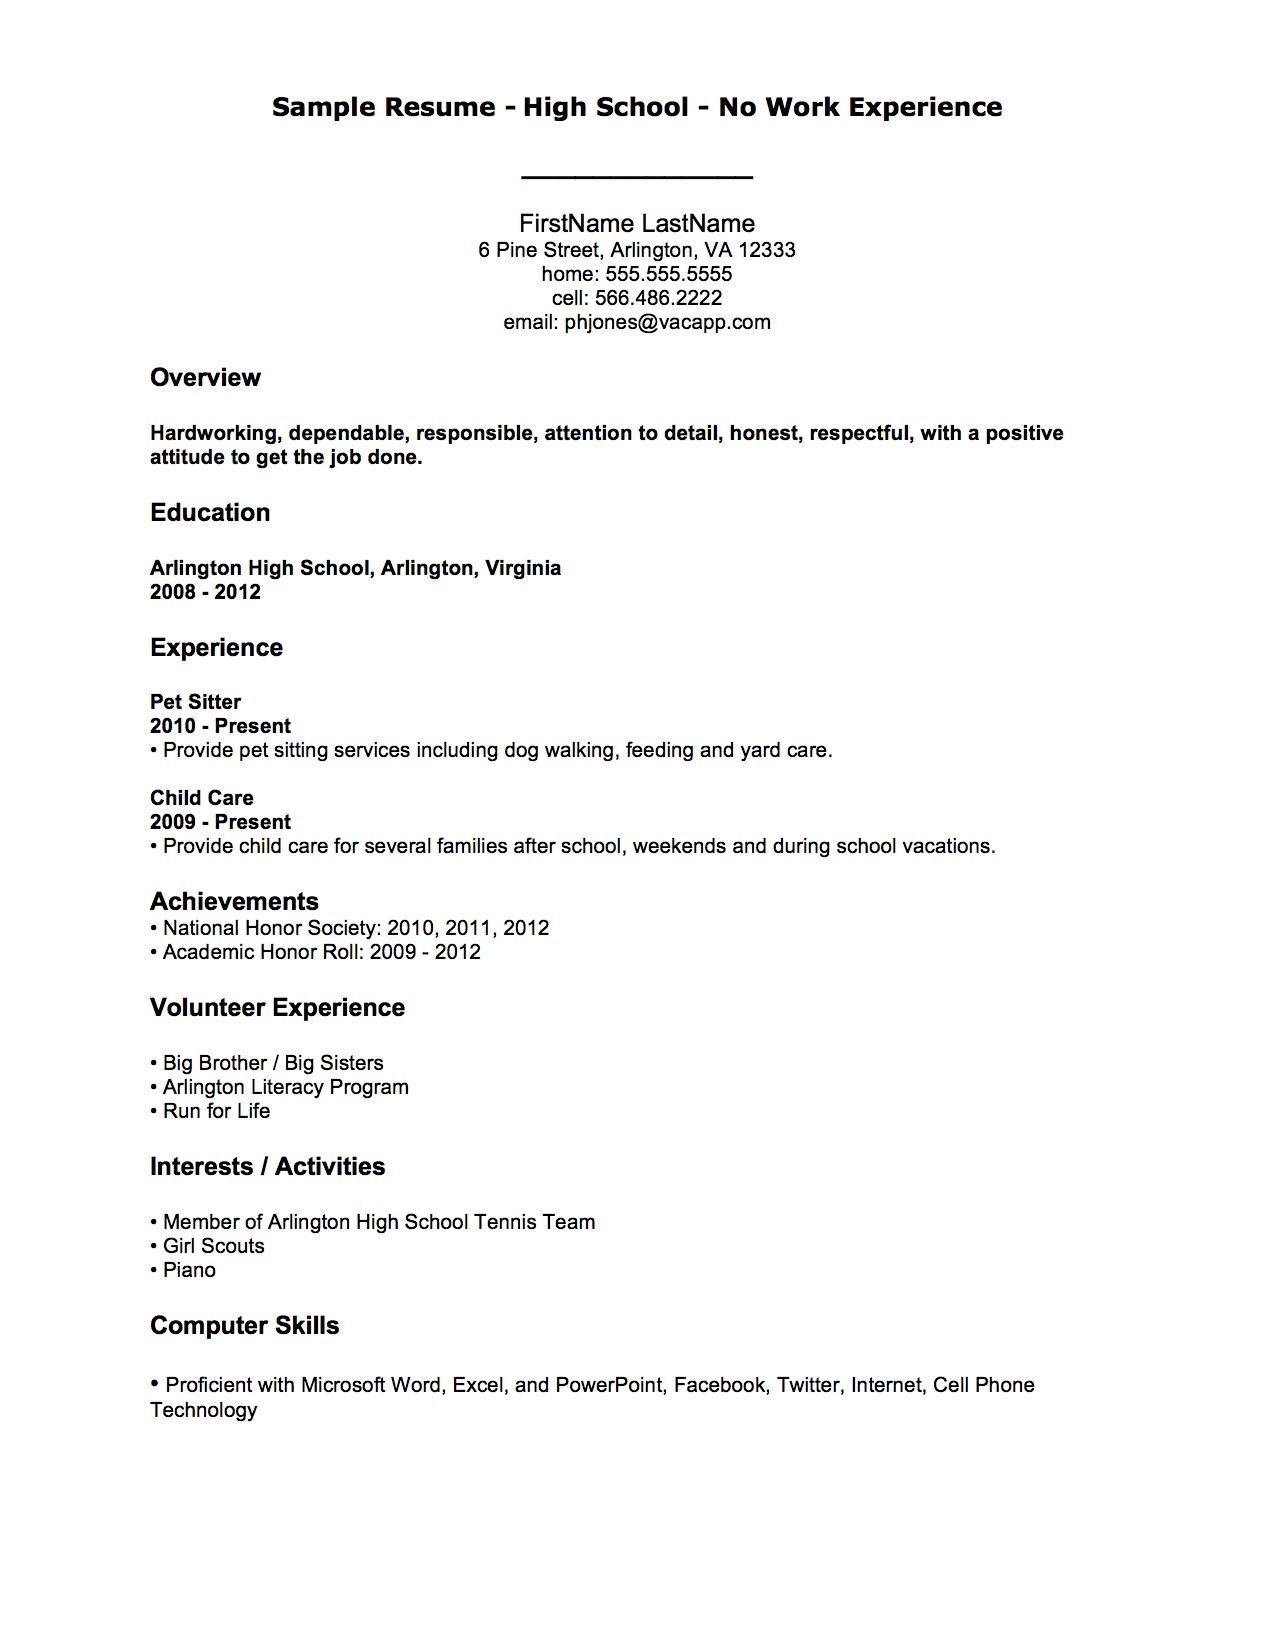 Examples Of Resumes For Highschool Students With No Experience